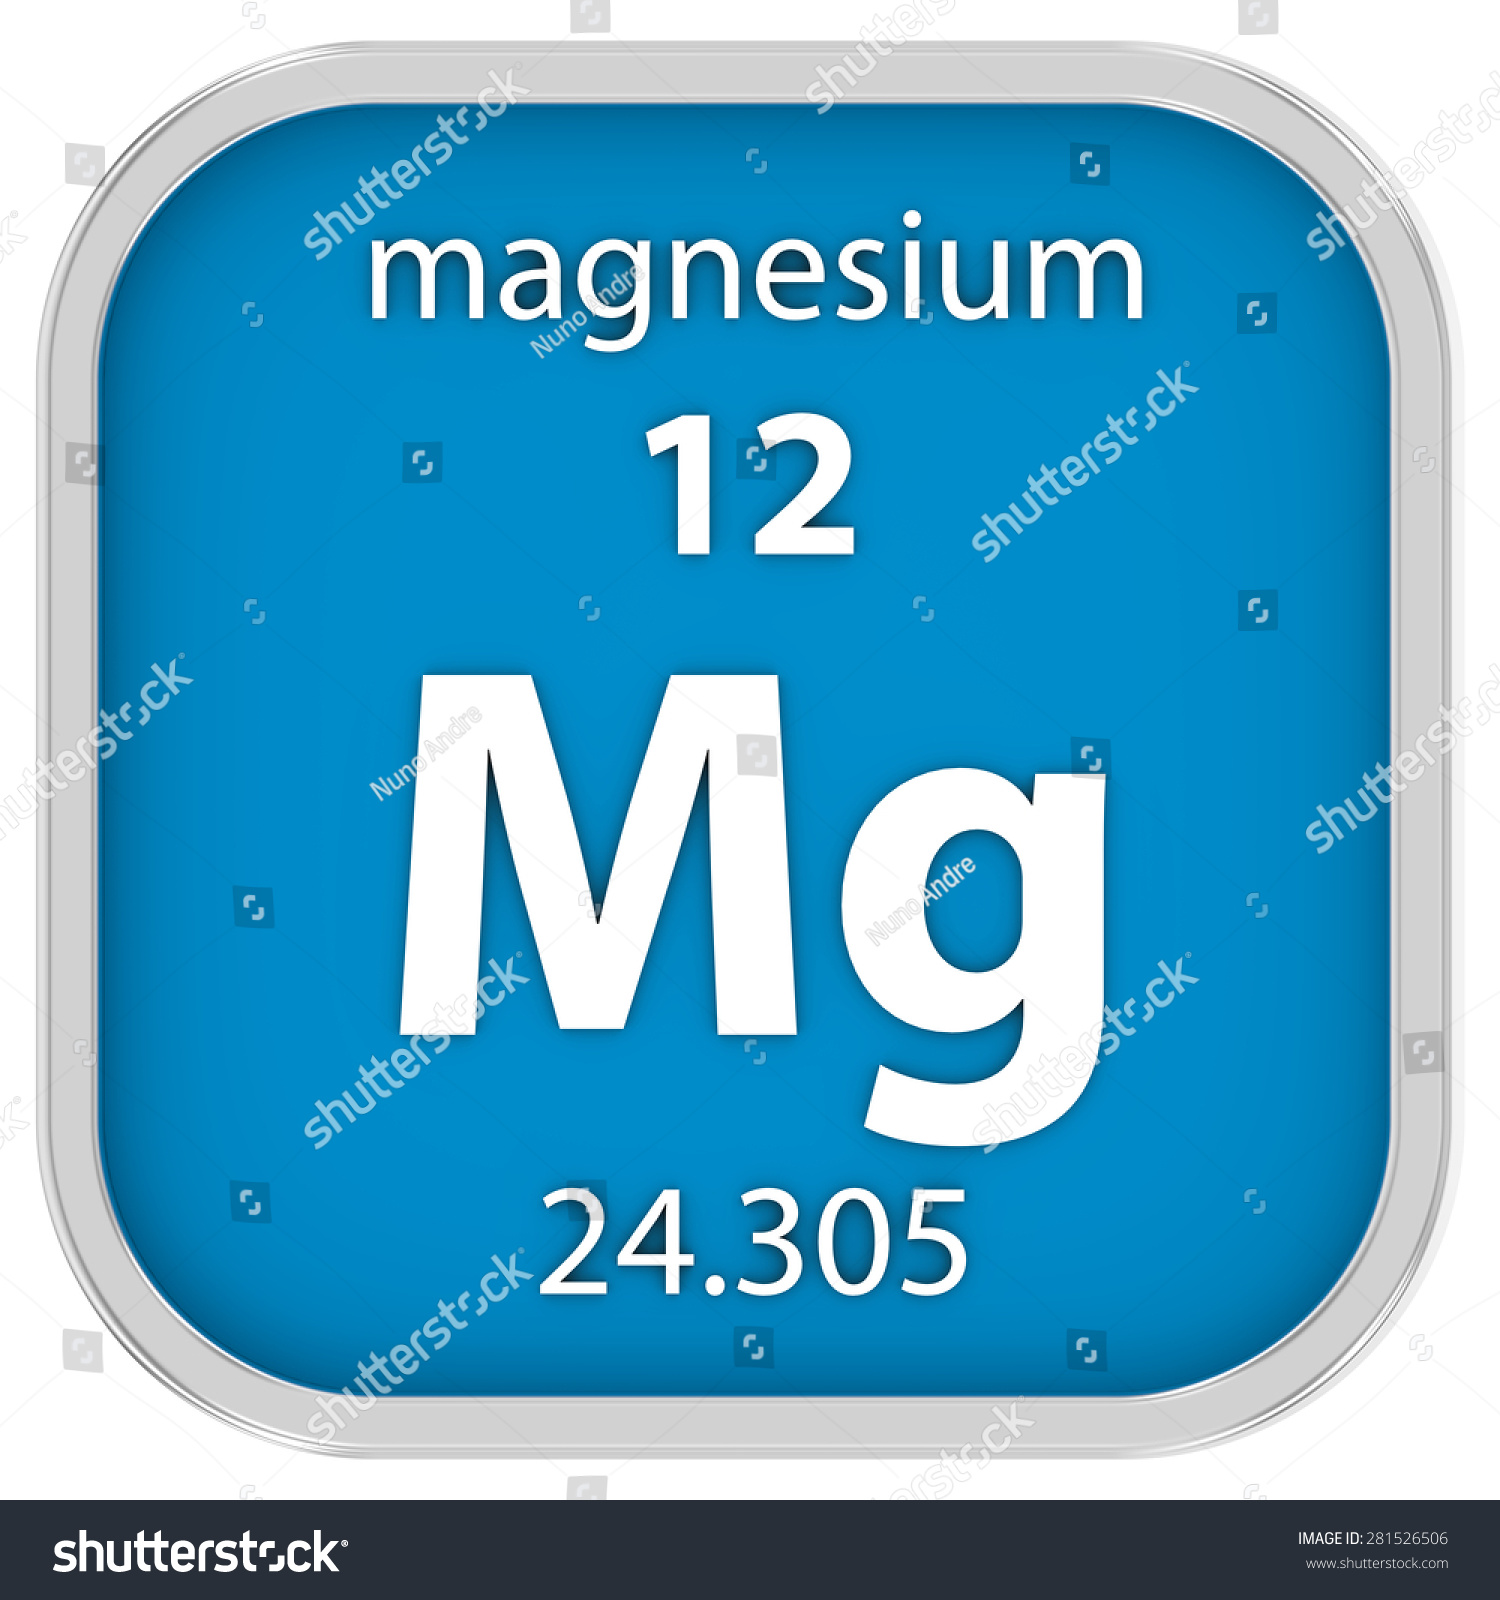 Magnesium in the periodic table image collections periodic table magnesium in the periodic table choice image periodic table images periodic table magnesium choice image periodic gamestrikefo Gallery